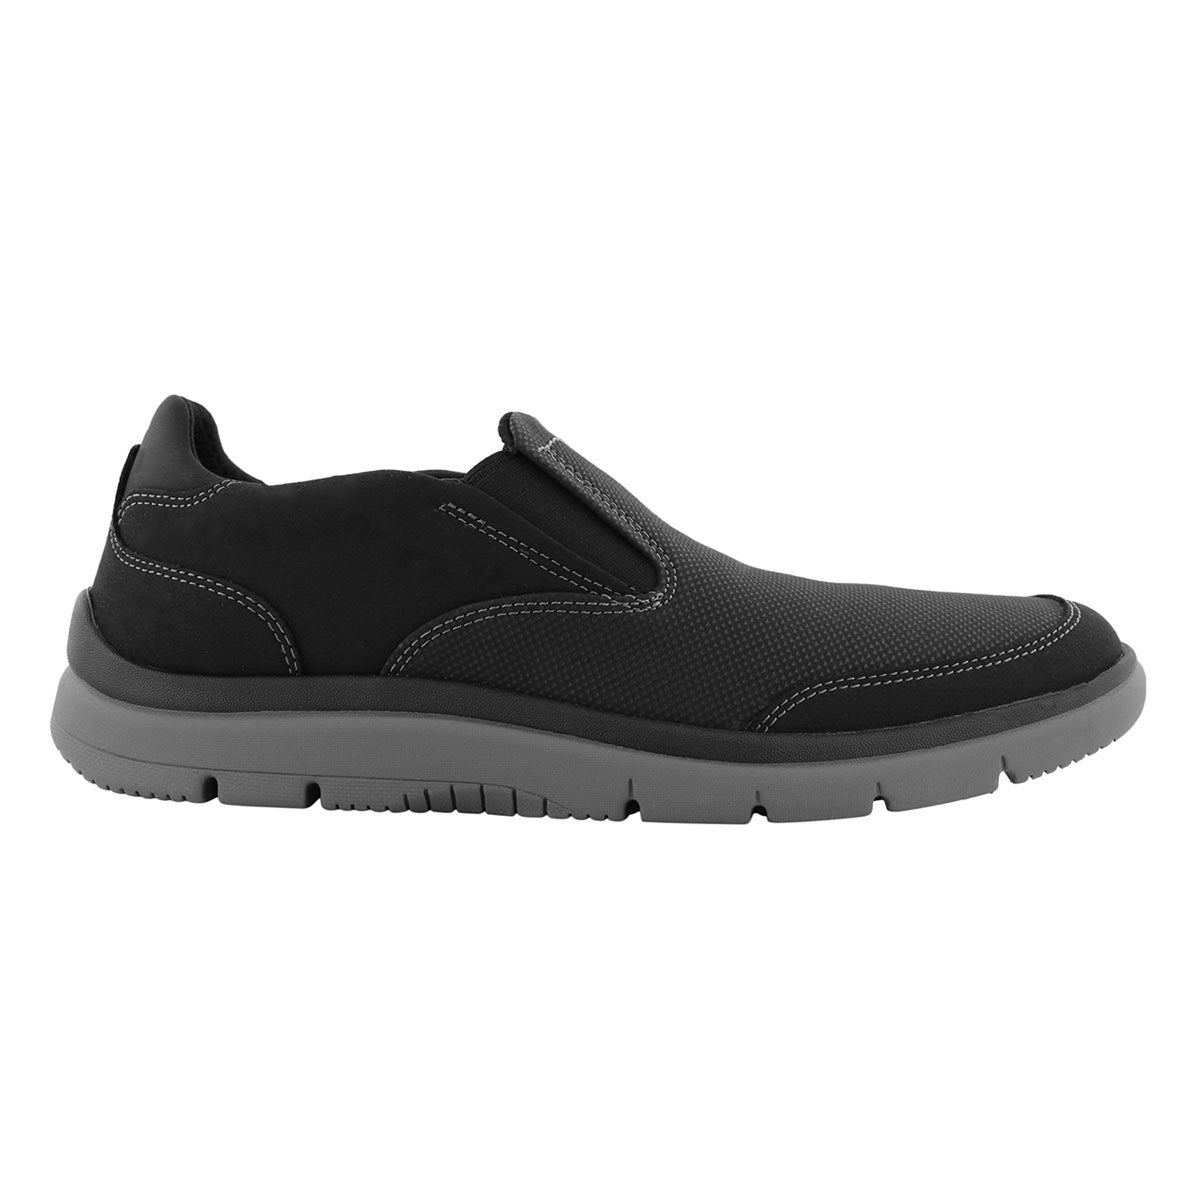 Mns Tunsil Step blk casual slip on shoe